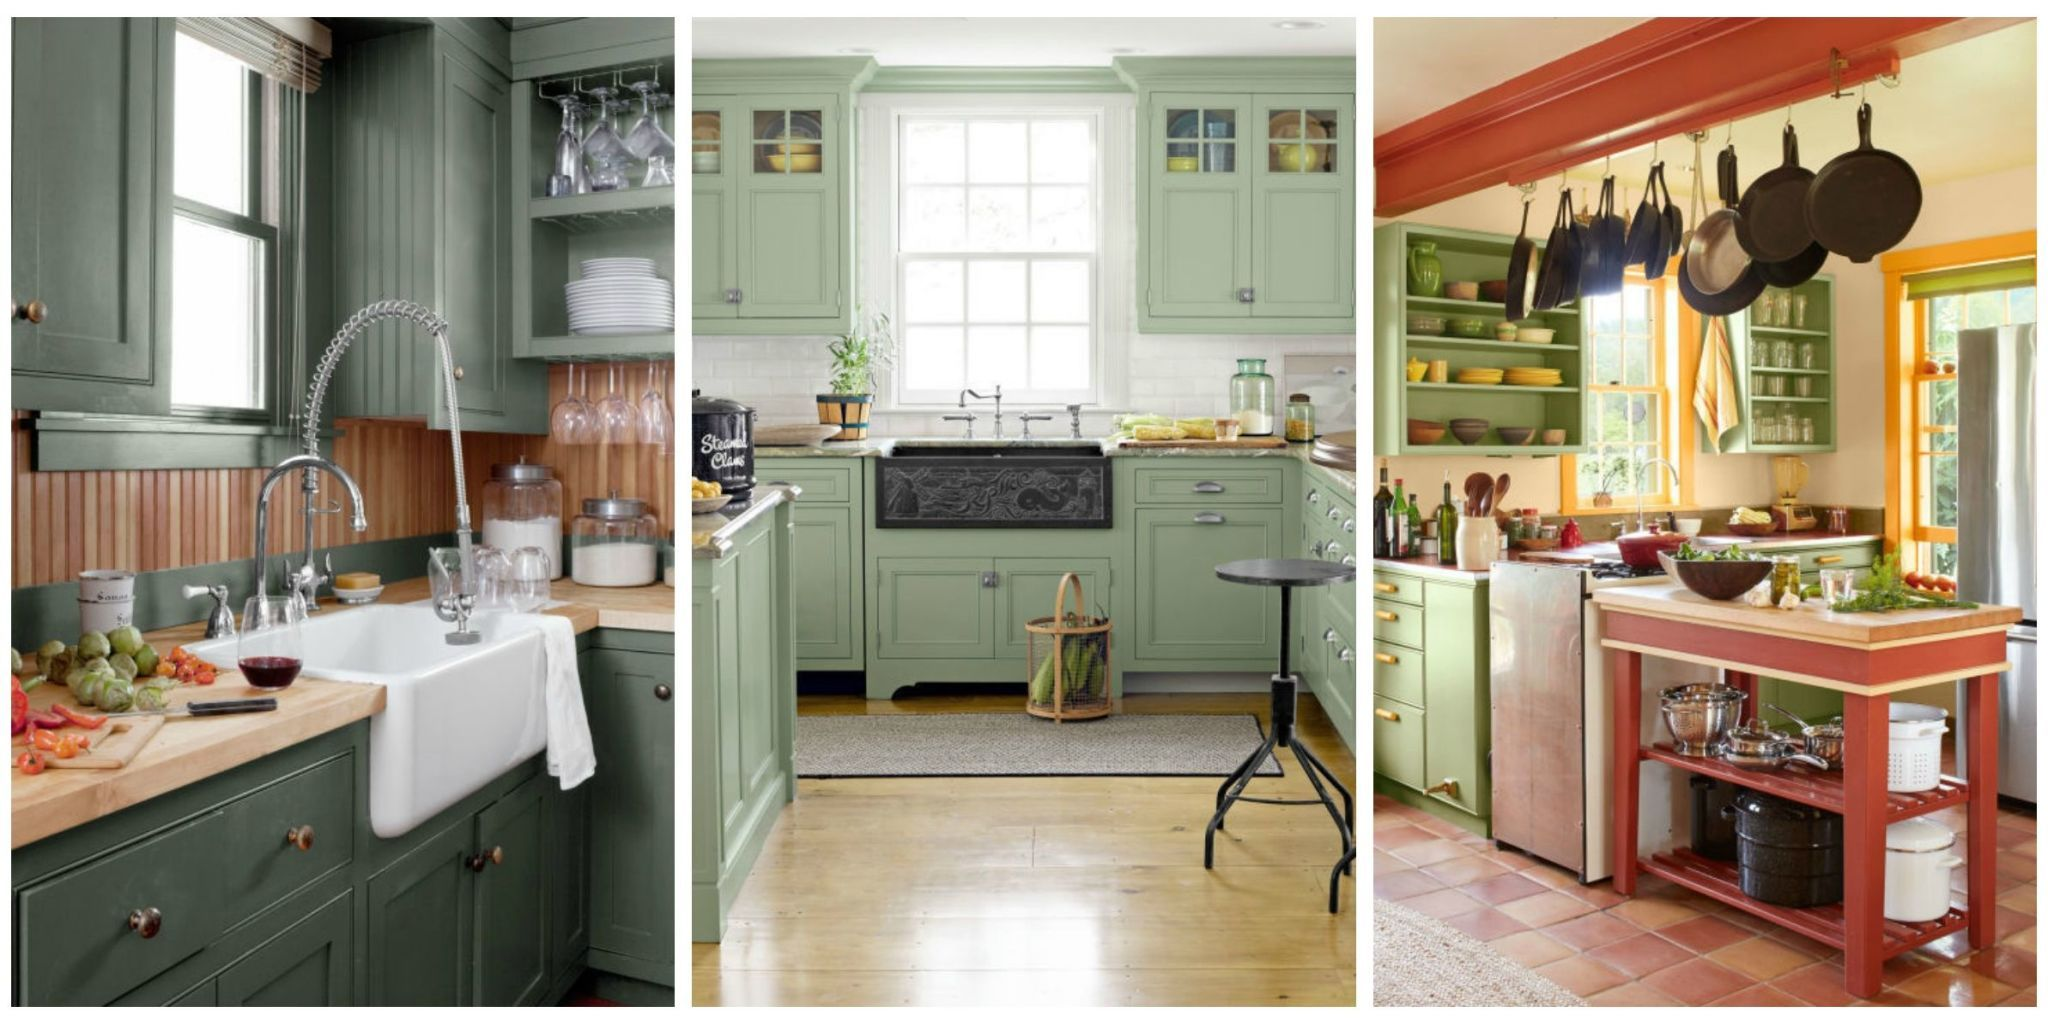 Awesome Weu0027re Here To Give You The Green Light To Proceed With Your Next Home  Improvement Project! With Paint Options Ranging From Mint To Sage, These  Green Kitchen ...